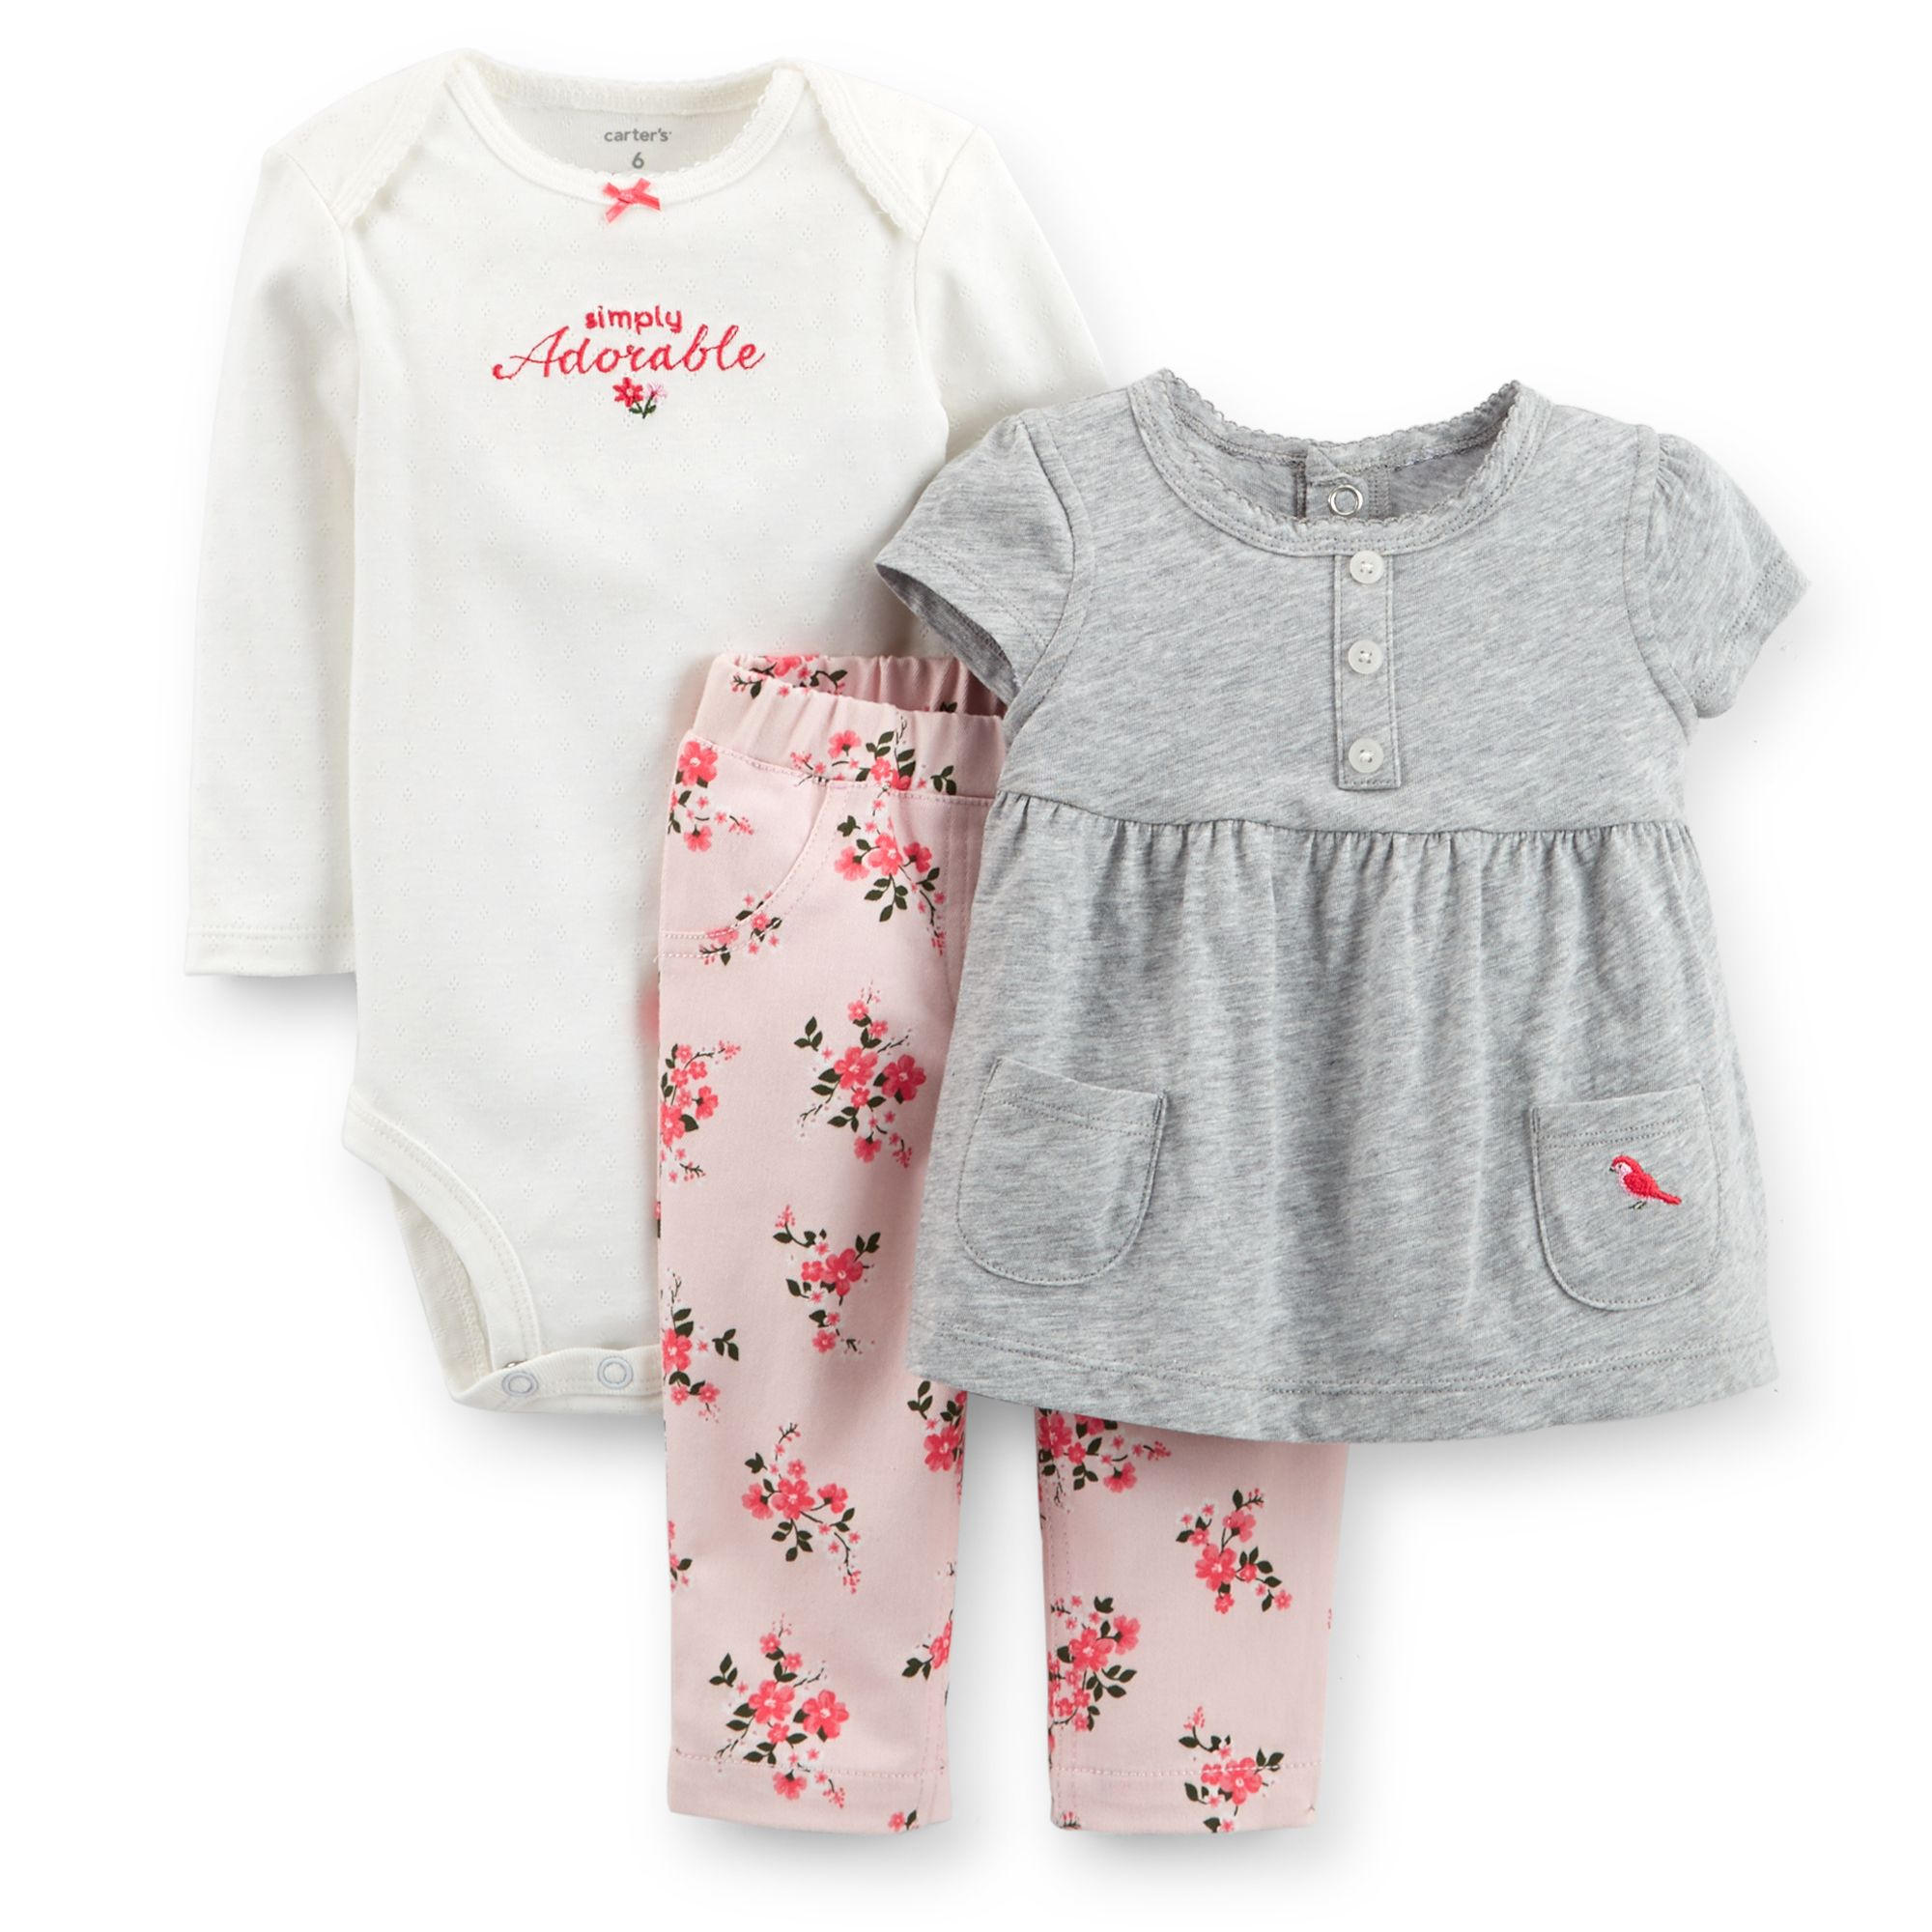 Conjunto 3 Piezas Carters Baby Girl Baby Girl Outfits Newborn Carters Clothing